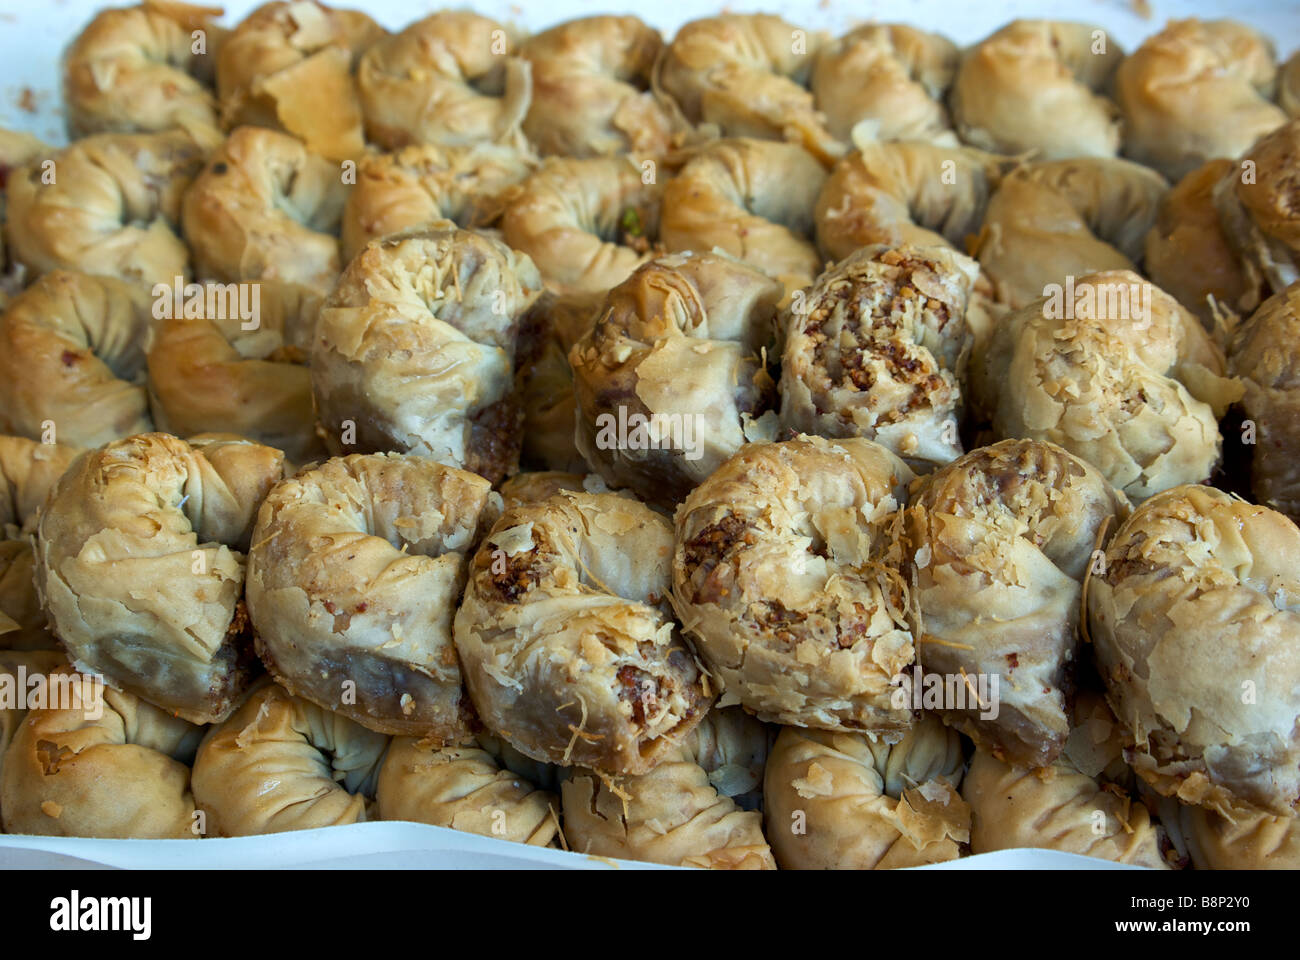 Flaky baked phyllo wrapped pastry crescent desserts at Shuk Ha Carmel open air market Stock Photo